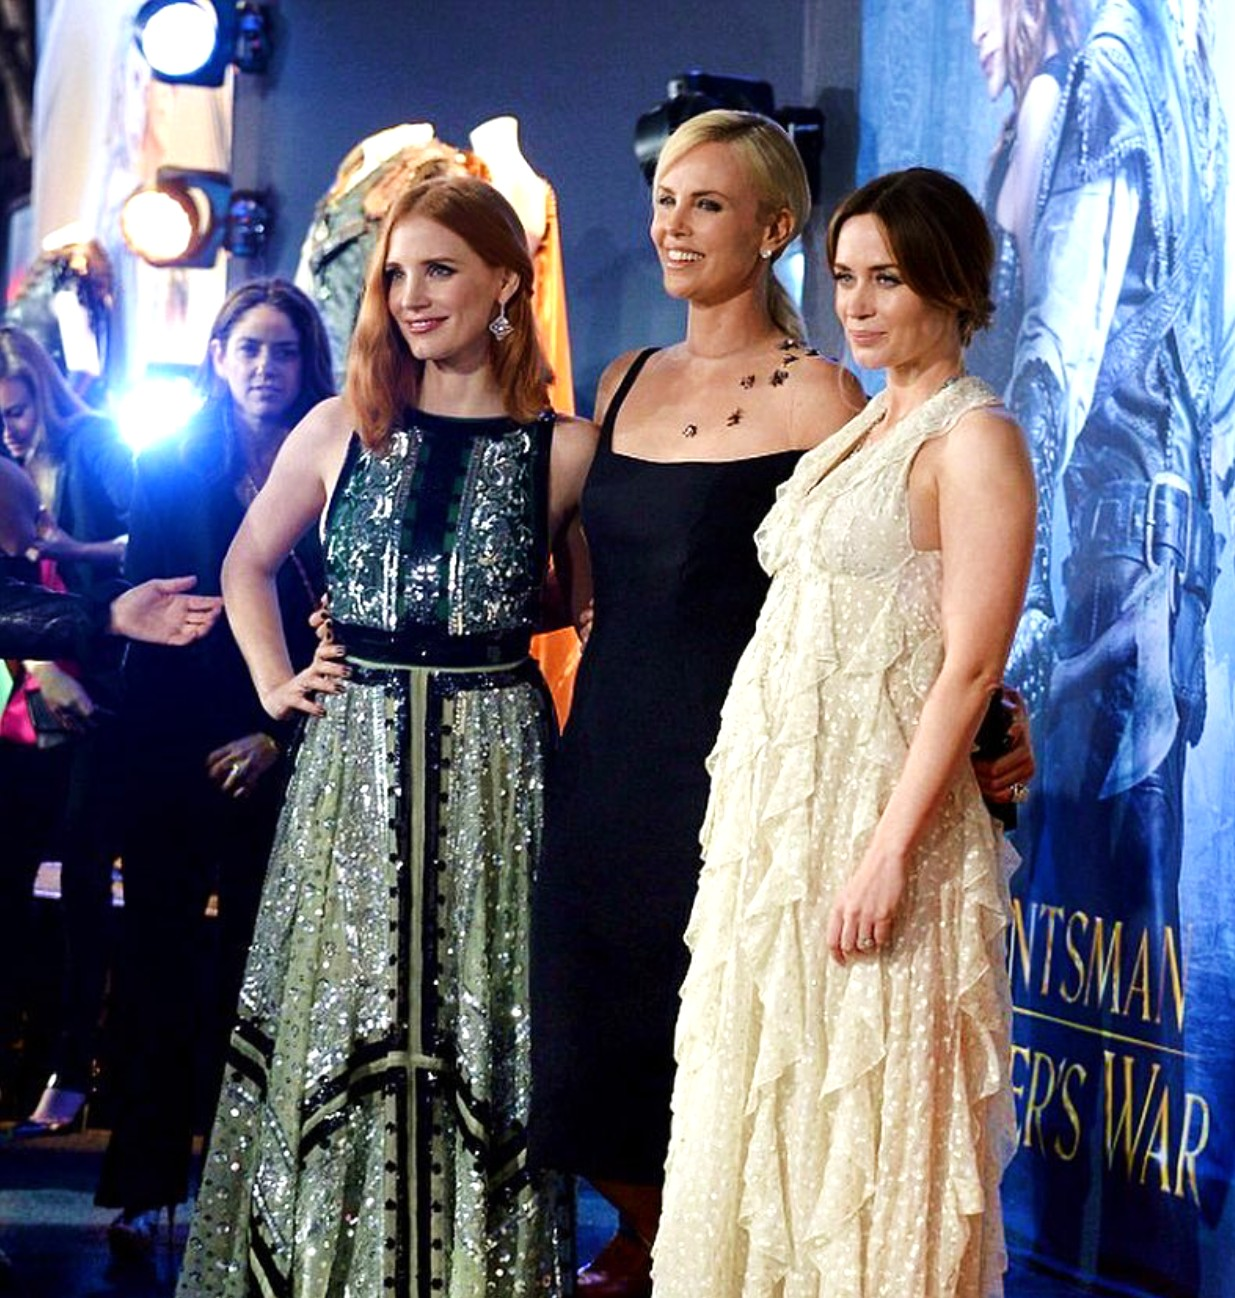 The Huntsman Winter's War, movie premiere, Jessica Chastain, Charlize Theron, Emily Blunt